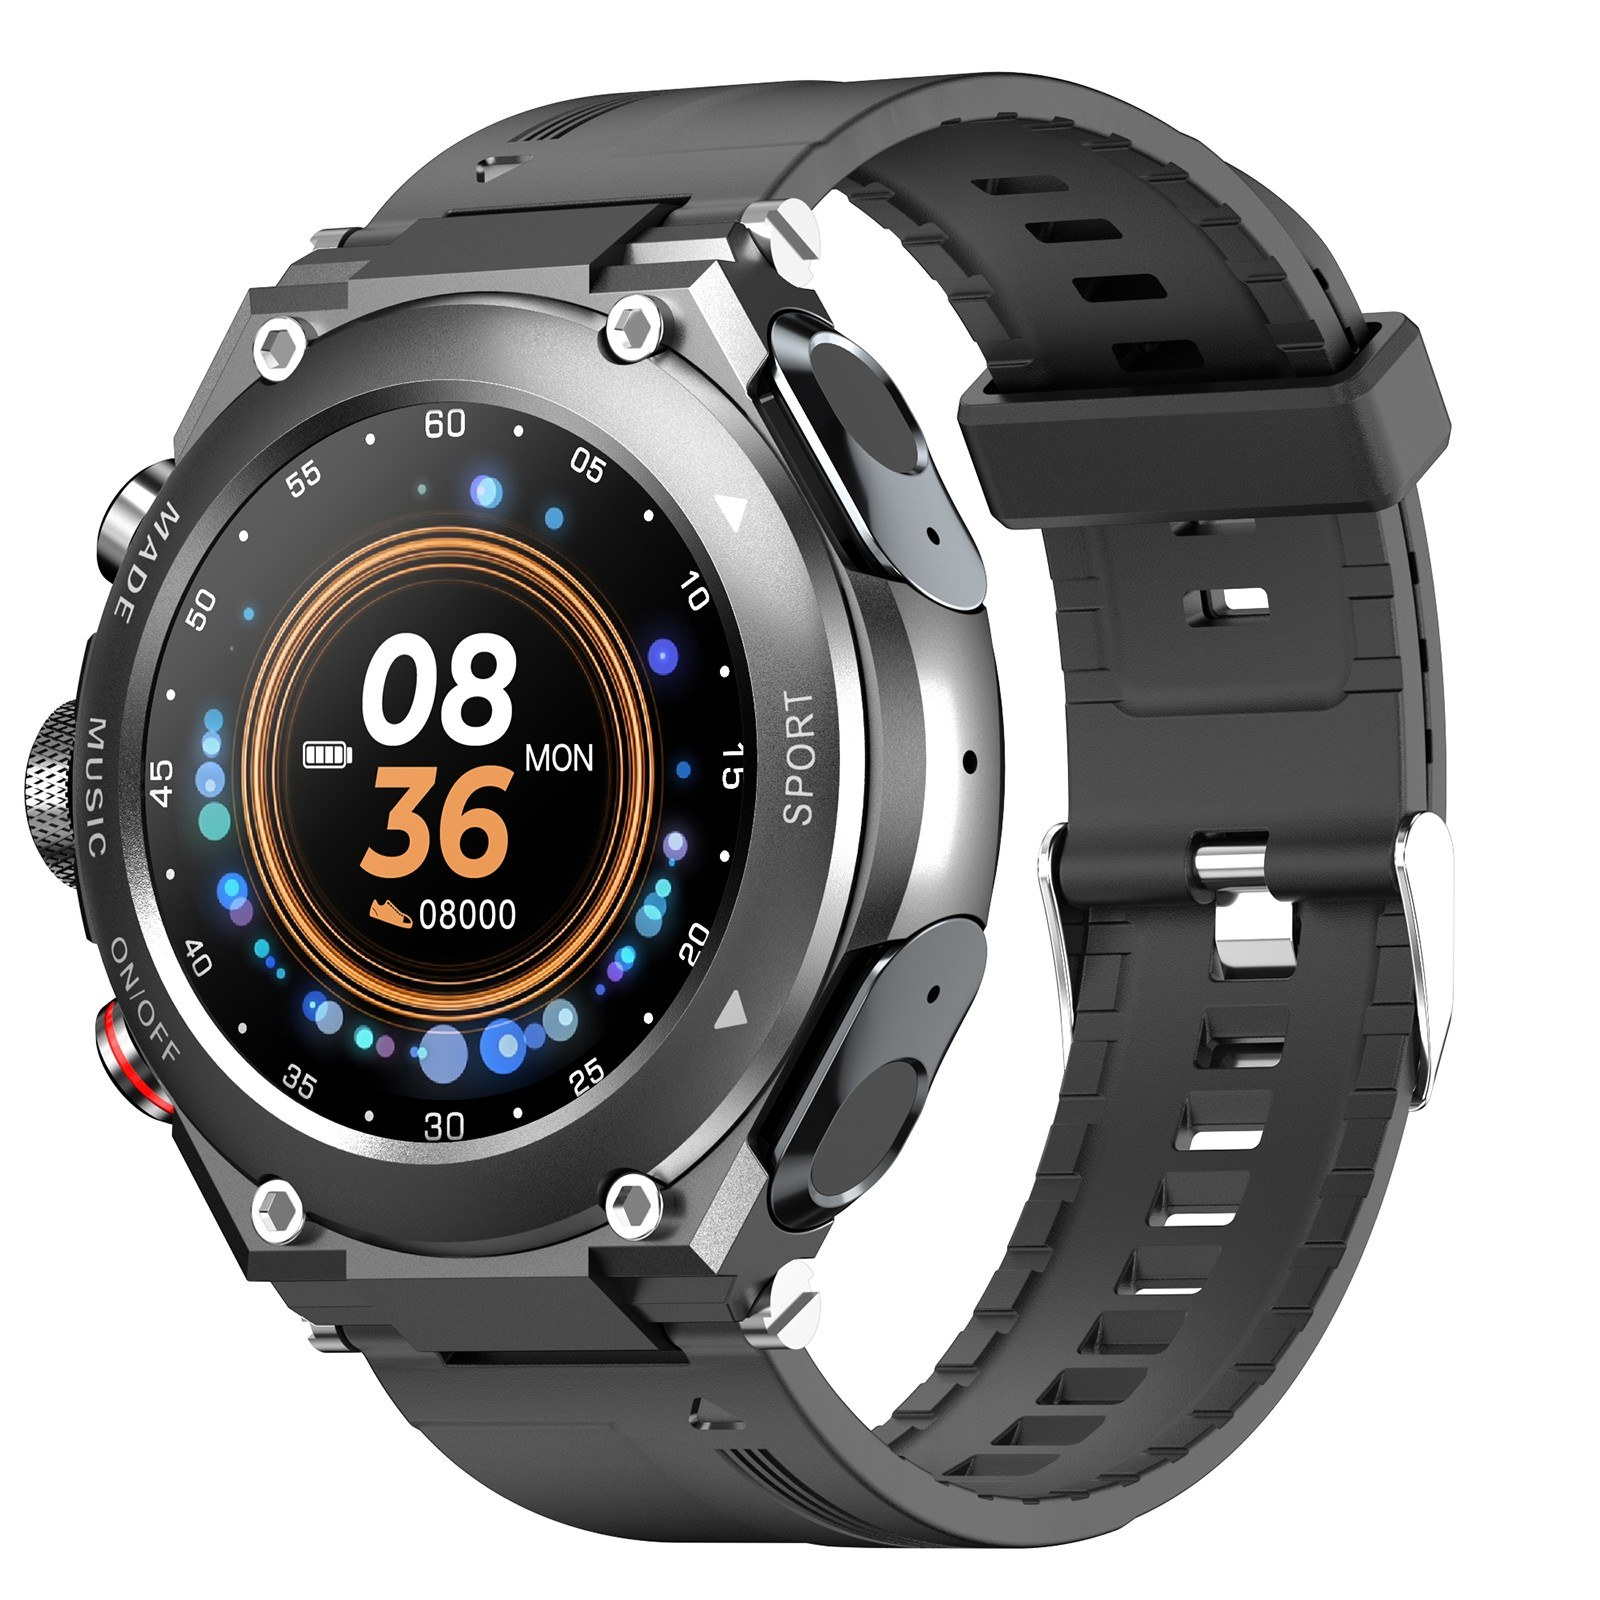 Tomtop - 45% OFF LEMFO T92 1.28-Inch IPS Full-Touch Screen 2 in 1 Smart Watch with BT Earbuds, Free Shipping $79.99